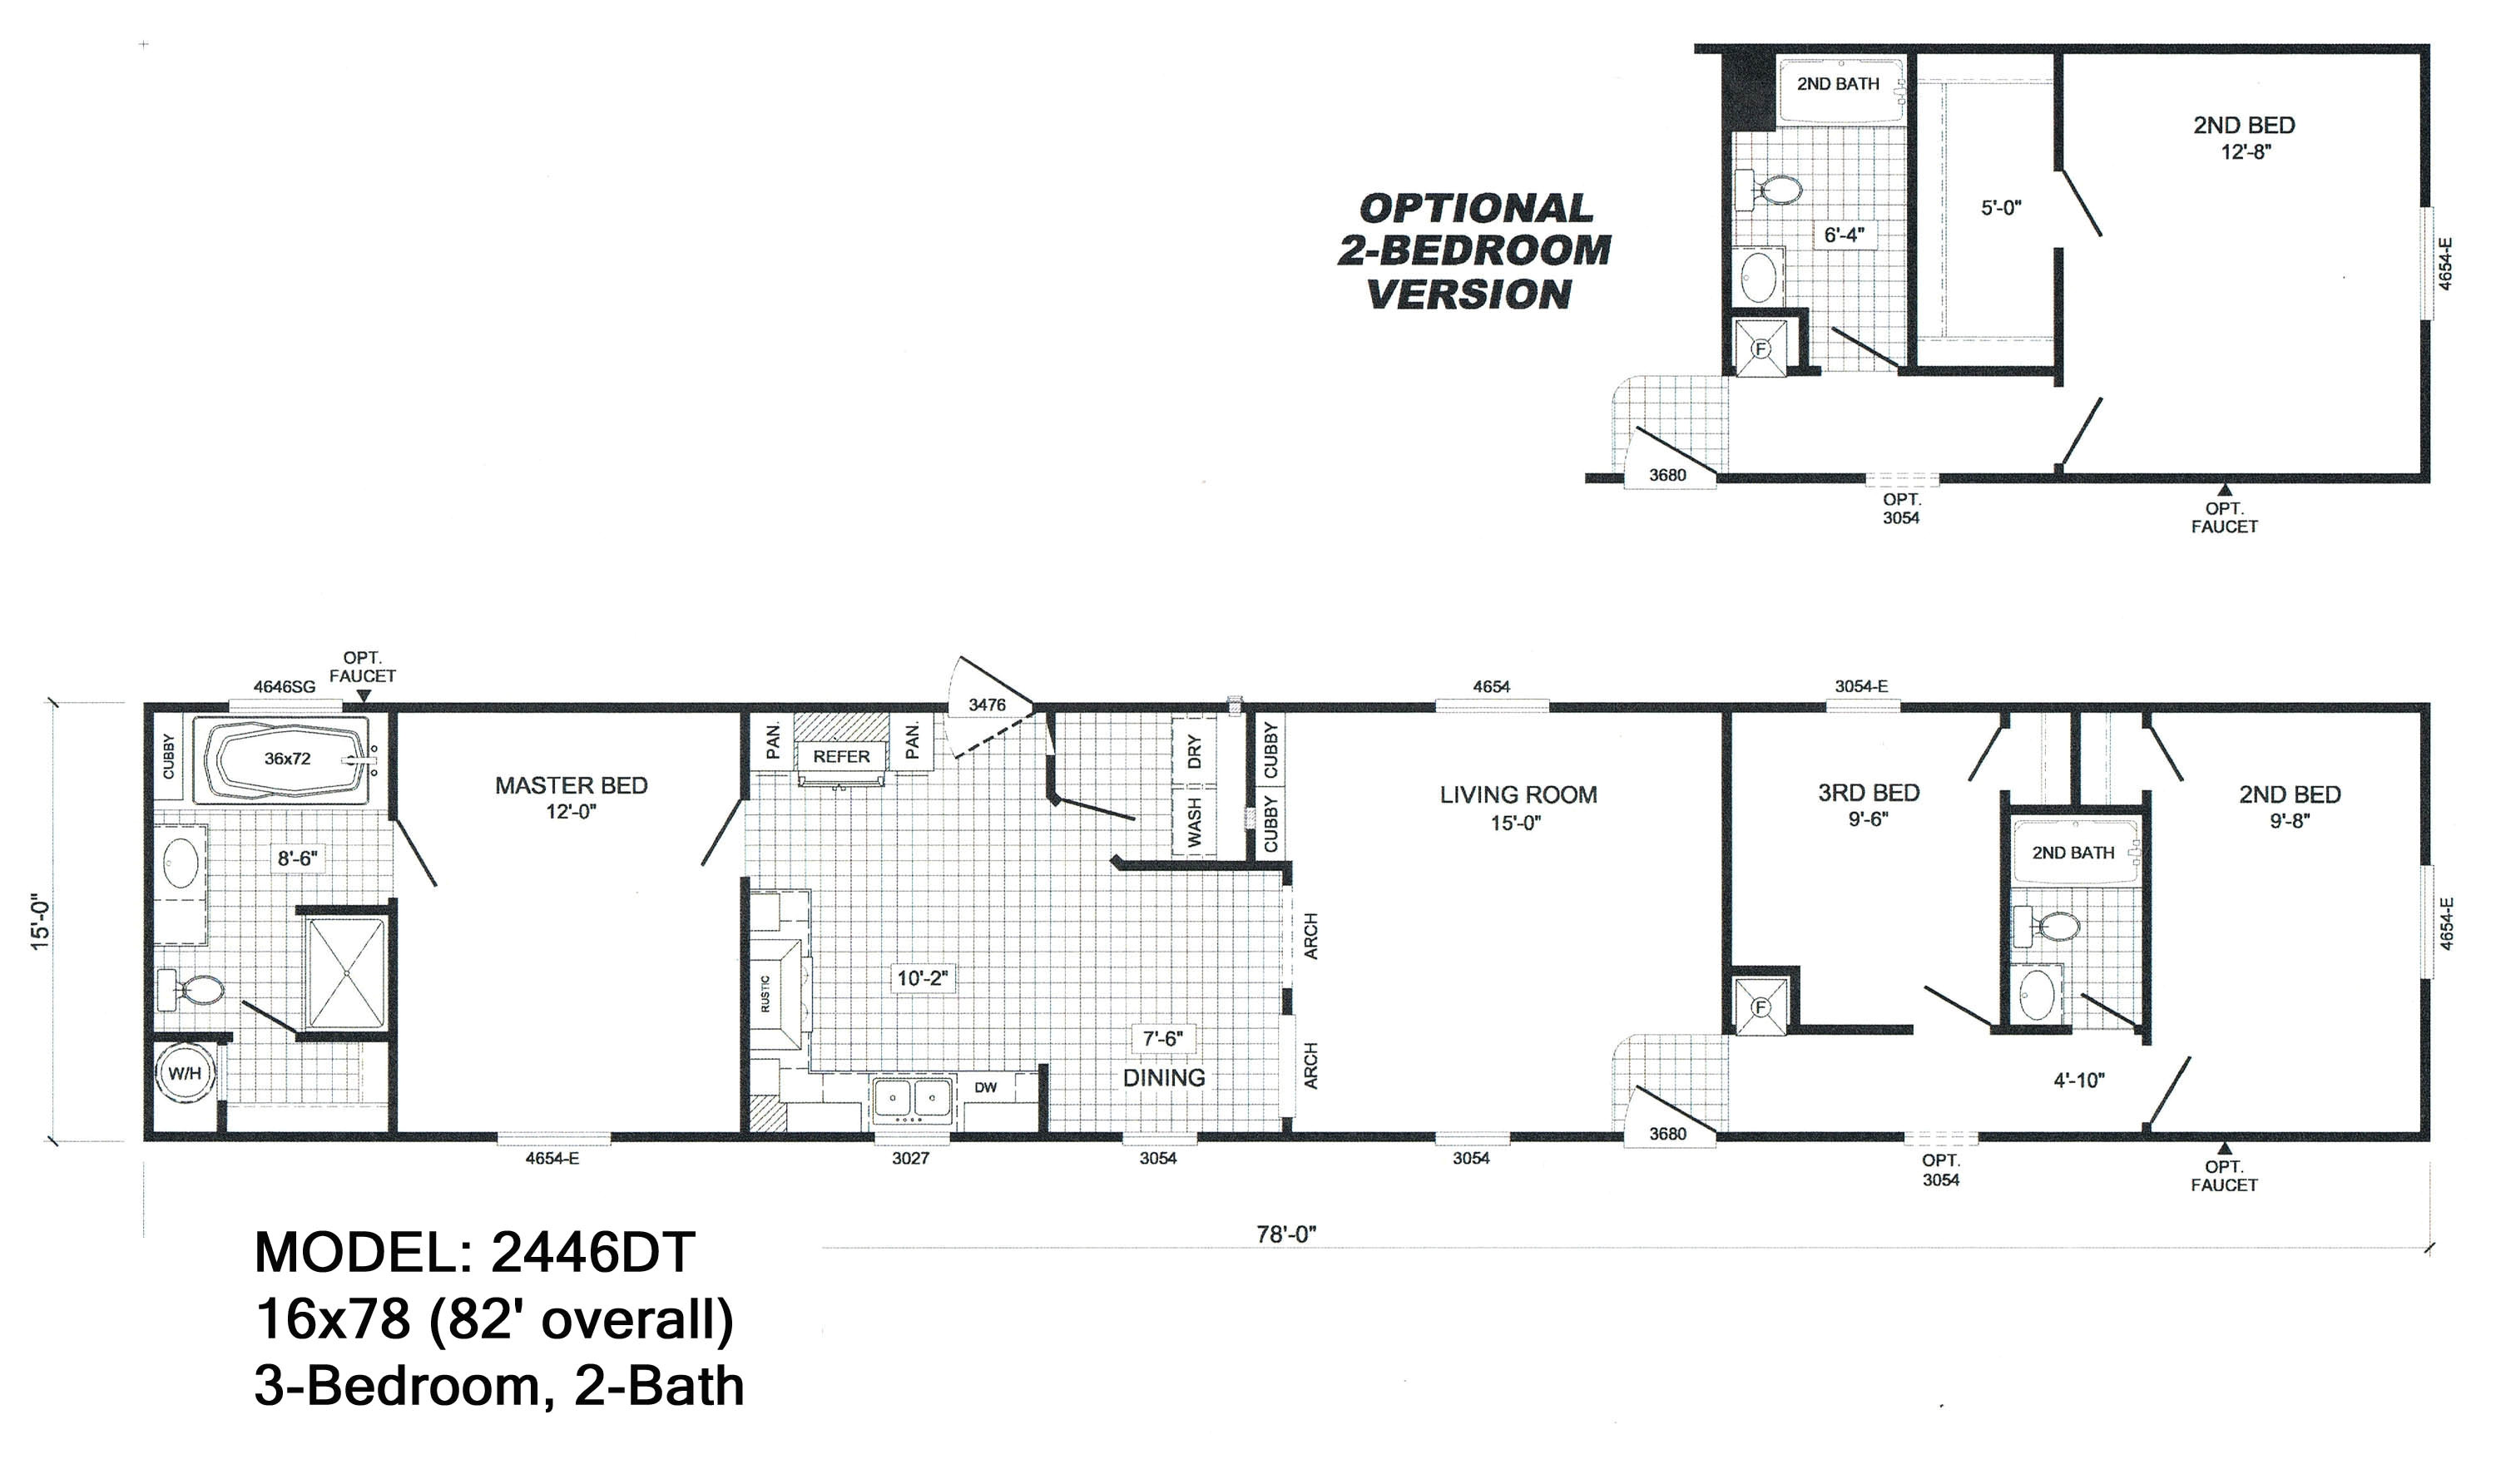 One Bedroom Mobile Home Floor Plans 3 Bedroom 2 Bath Single Wide Mobile Home Floor Plans